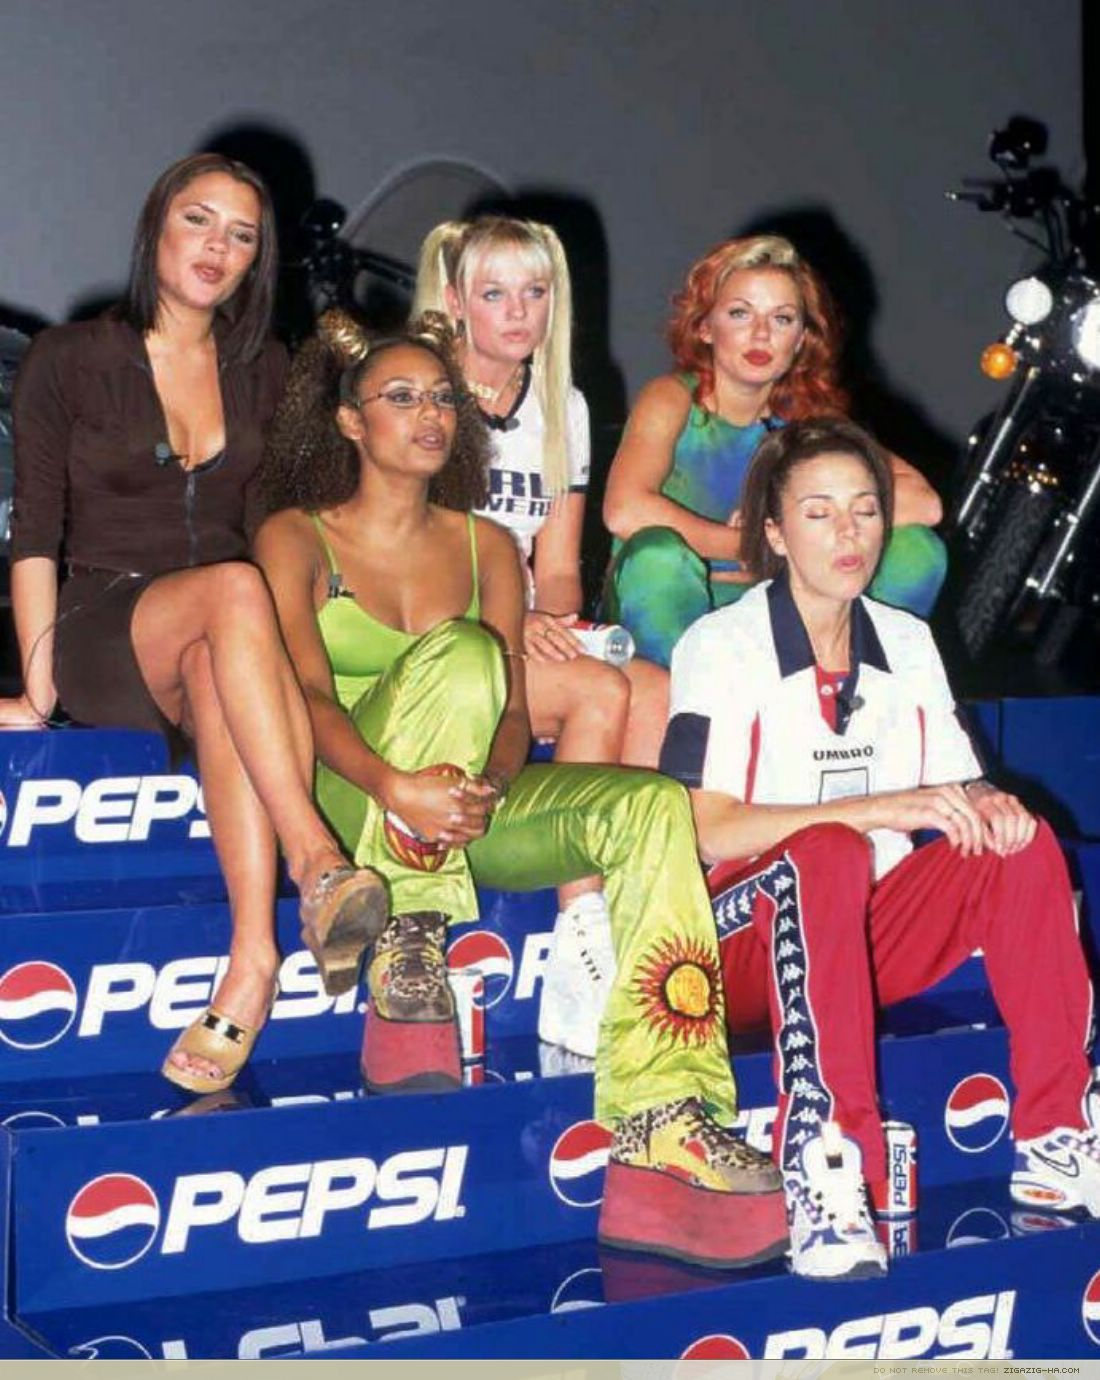 Home spice girls candids appearances hq large 1997 1997 spice girls at